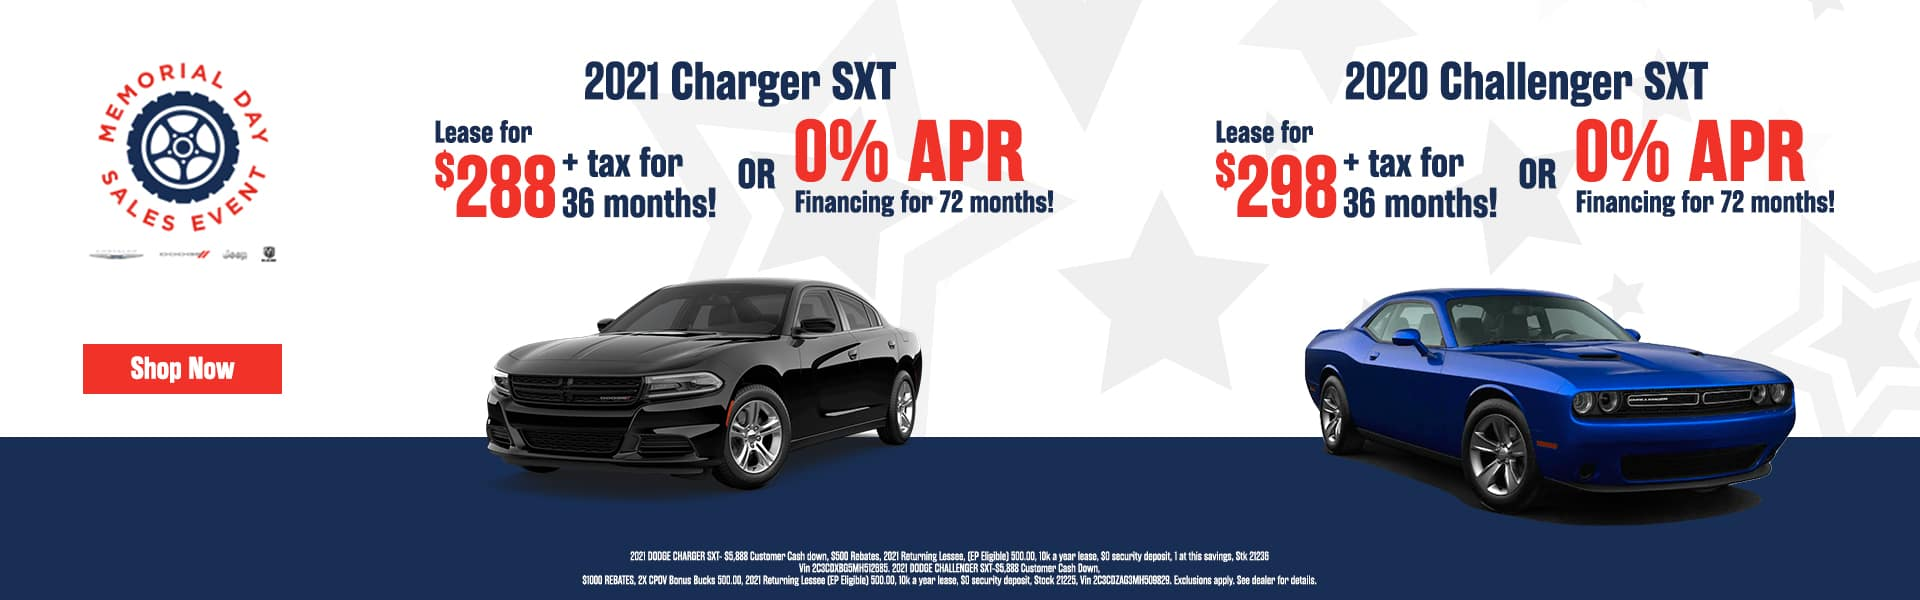 2021 Charger SXT LEASE for 288+ tax for 36 months! or 0% APR Financing for 72 months! 2020 Challenger: SXT LEASE for 298+ tax for 36 months! or 0% APR Financing for 72 months!